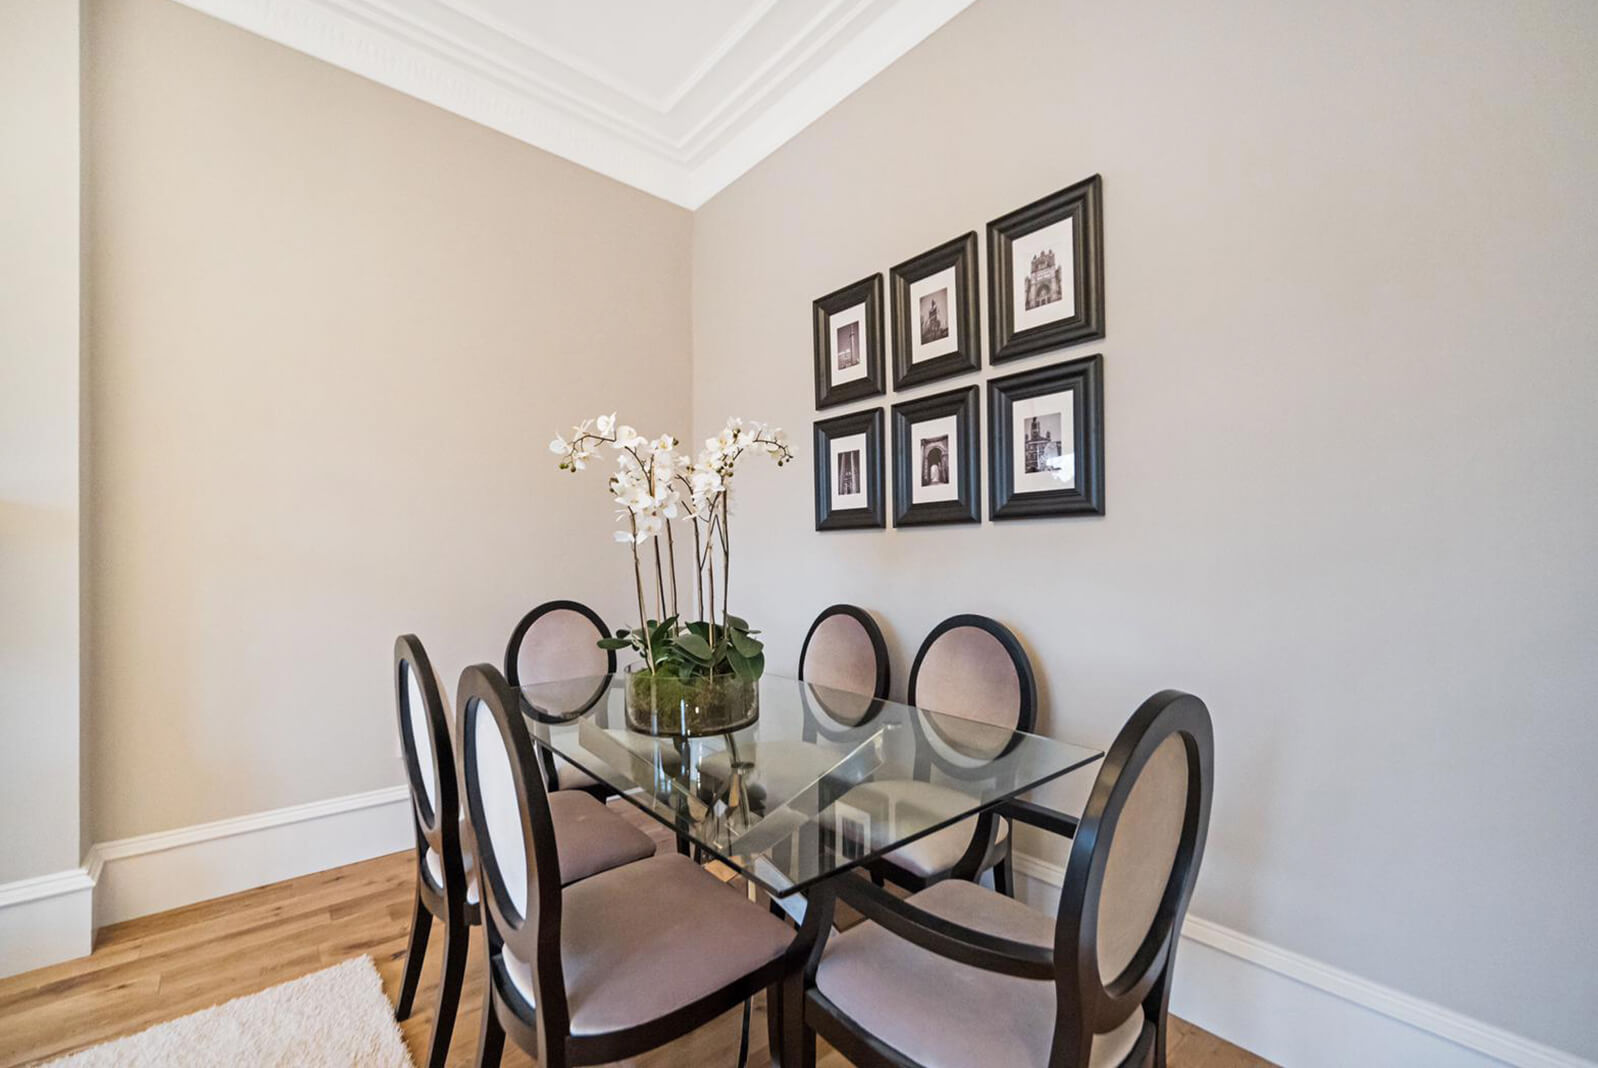 Dining area situated in the corner of the lounge. Large rectangular table with six chairs.